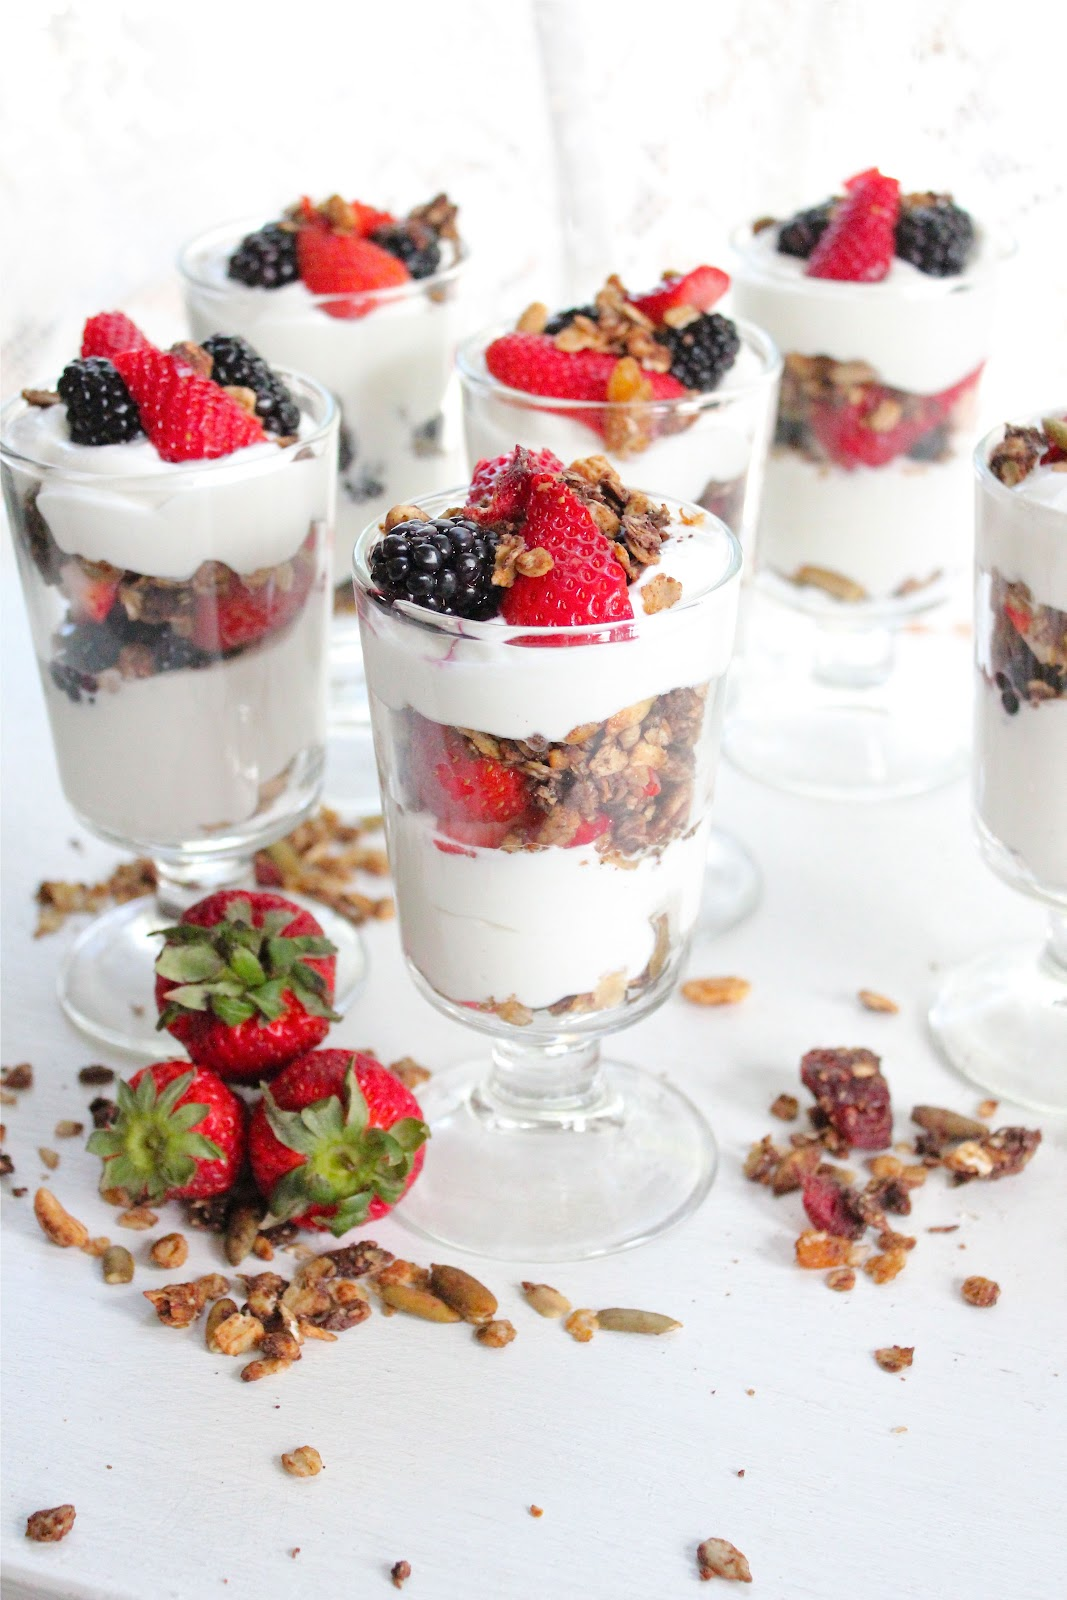 Yogurt Parfaits with a Twist!